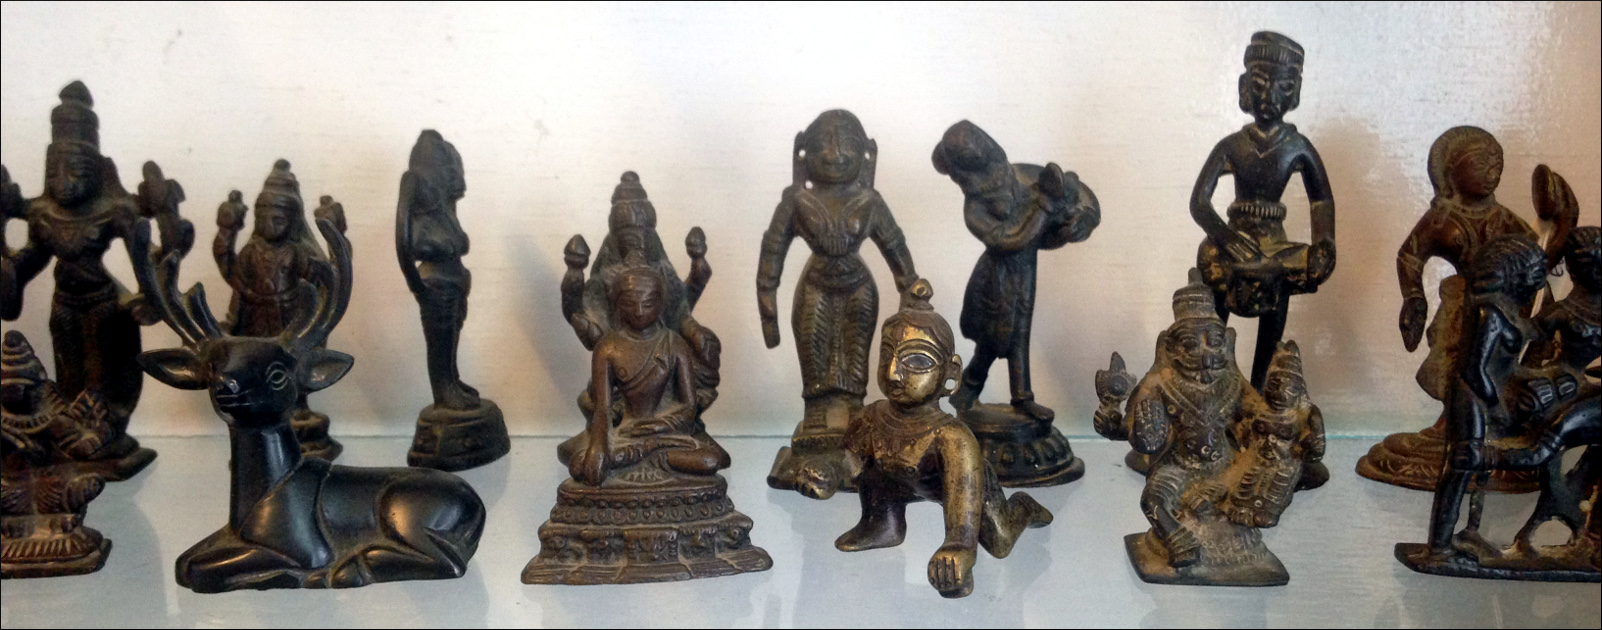 small statues